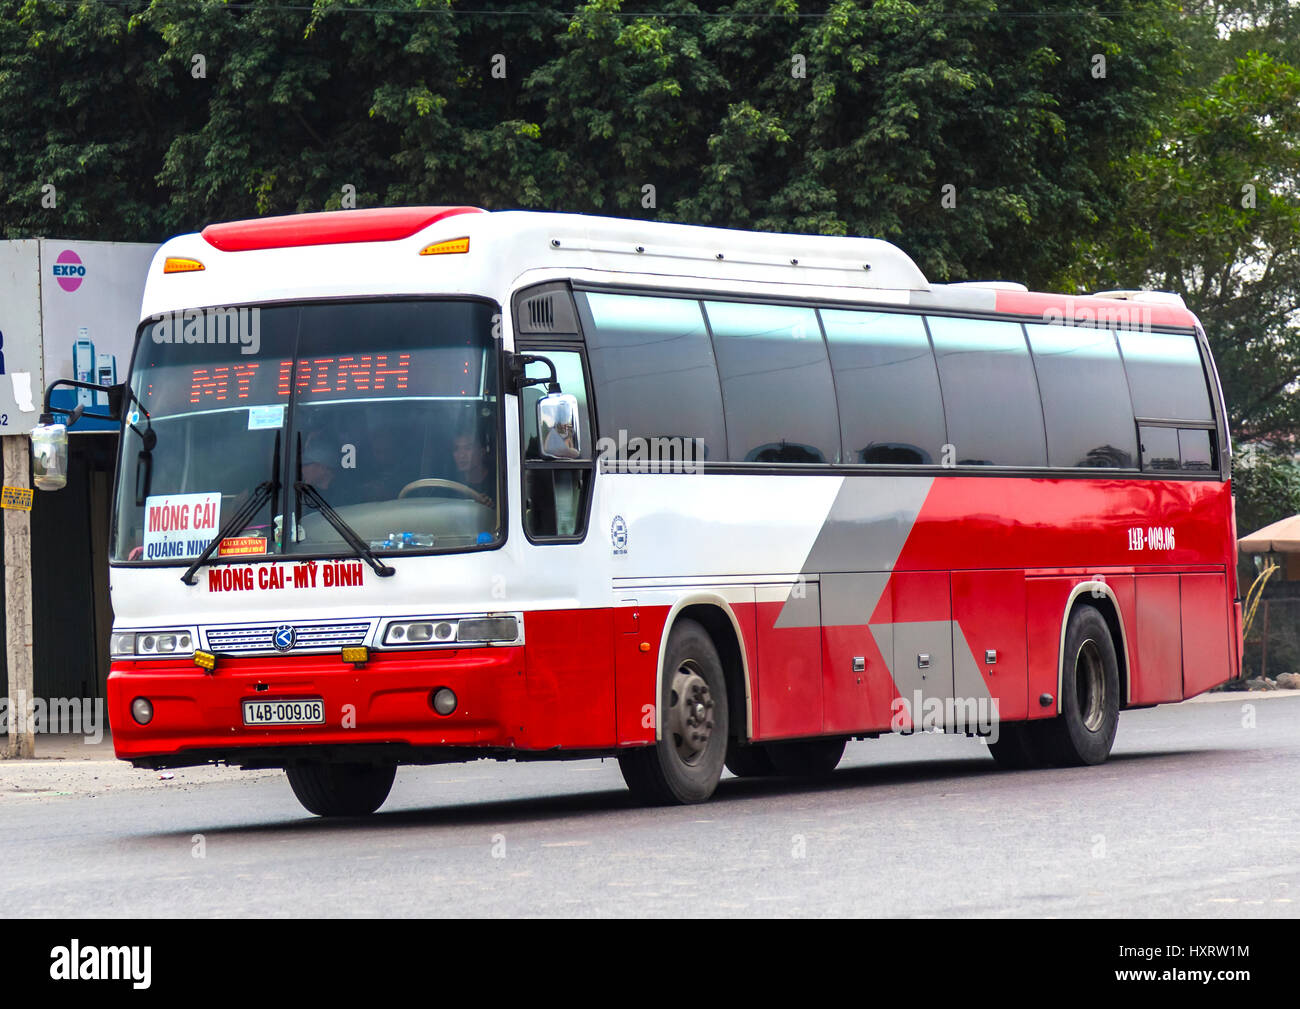 Public buses travel at high speed with little regard for road rules stopping frquently to pick up passengers on - Stock Image